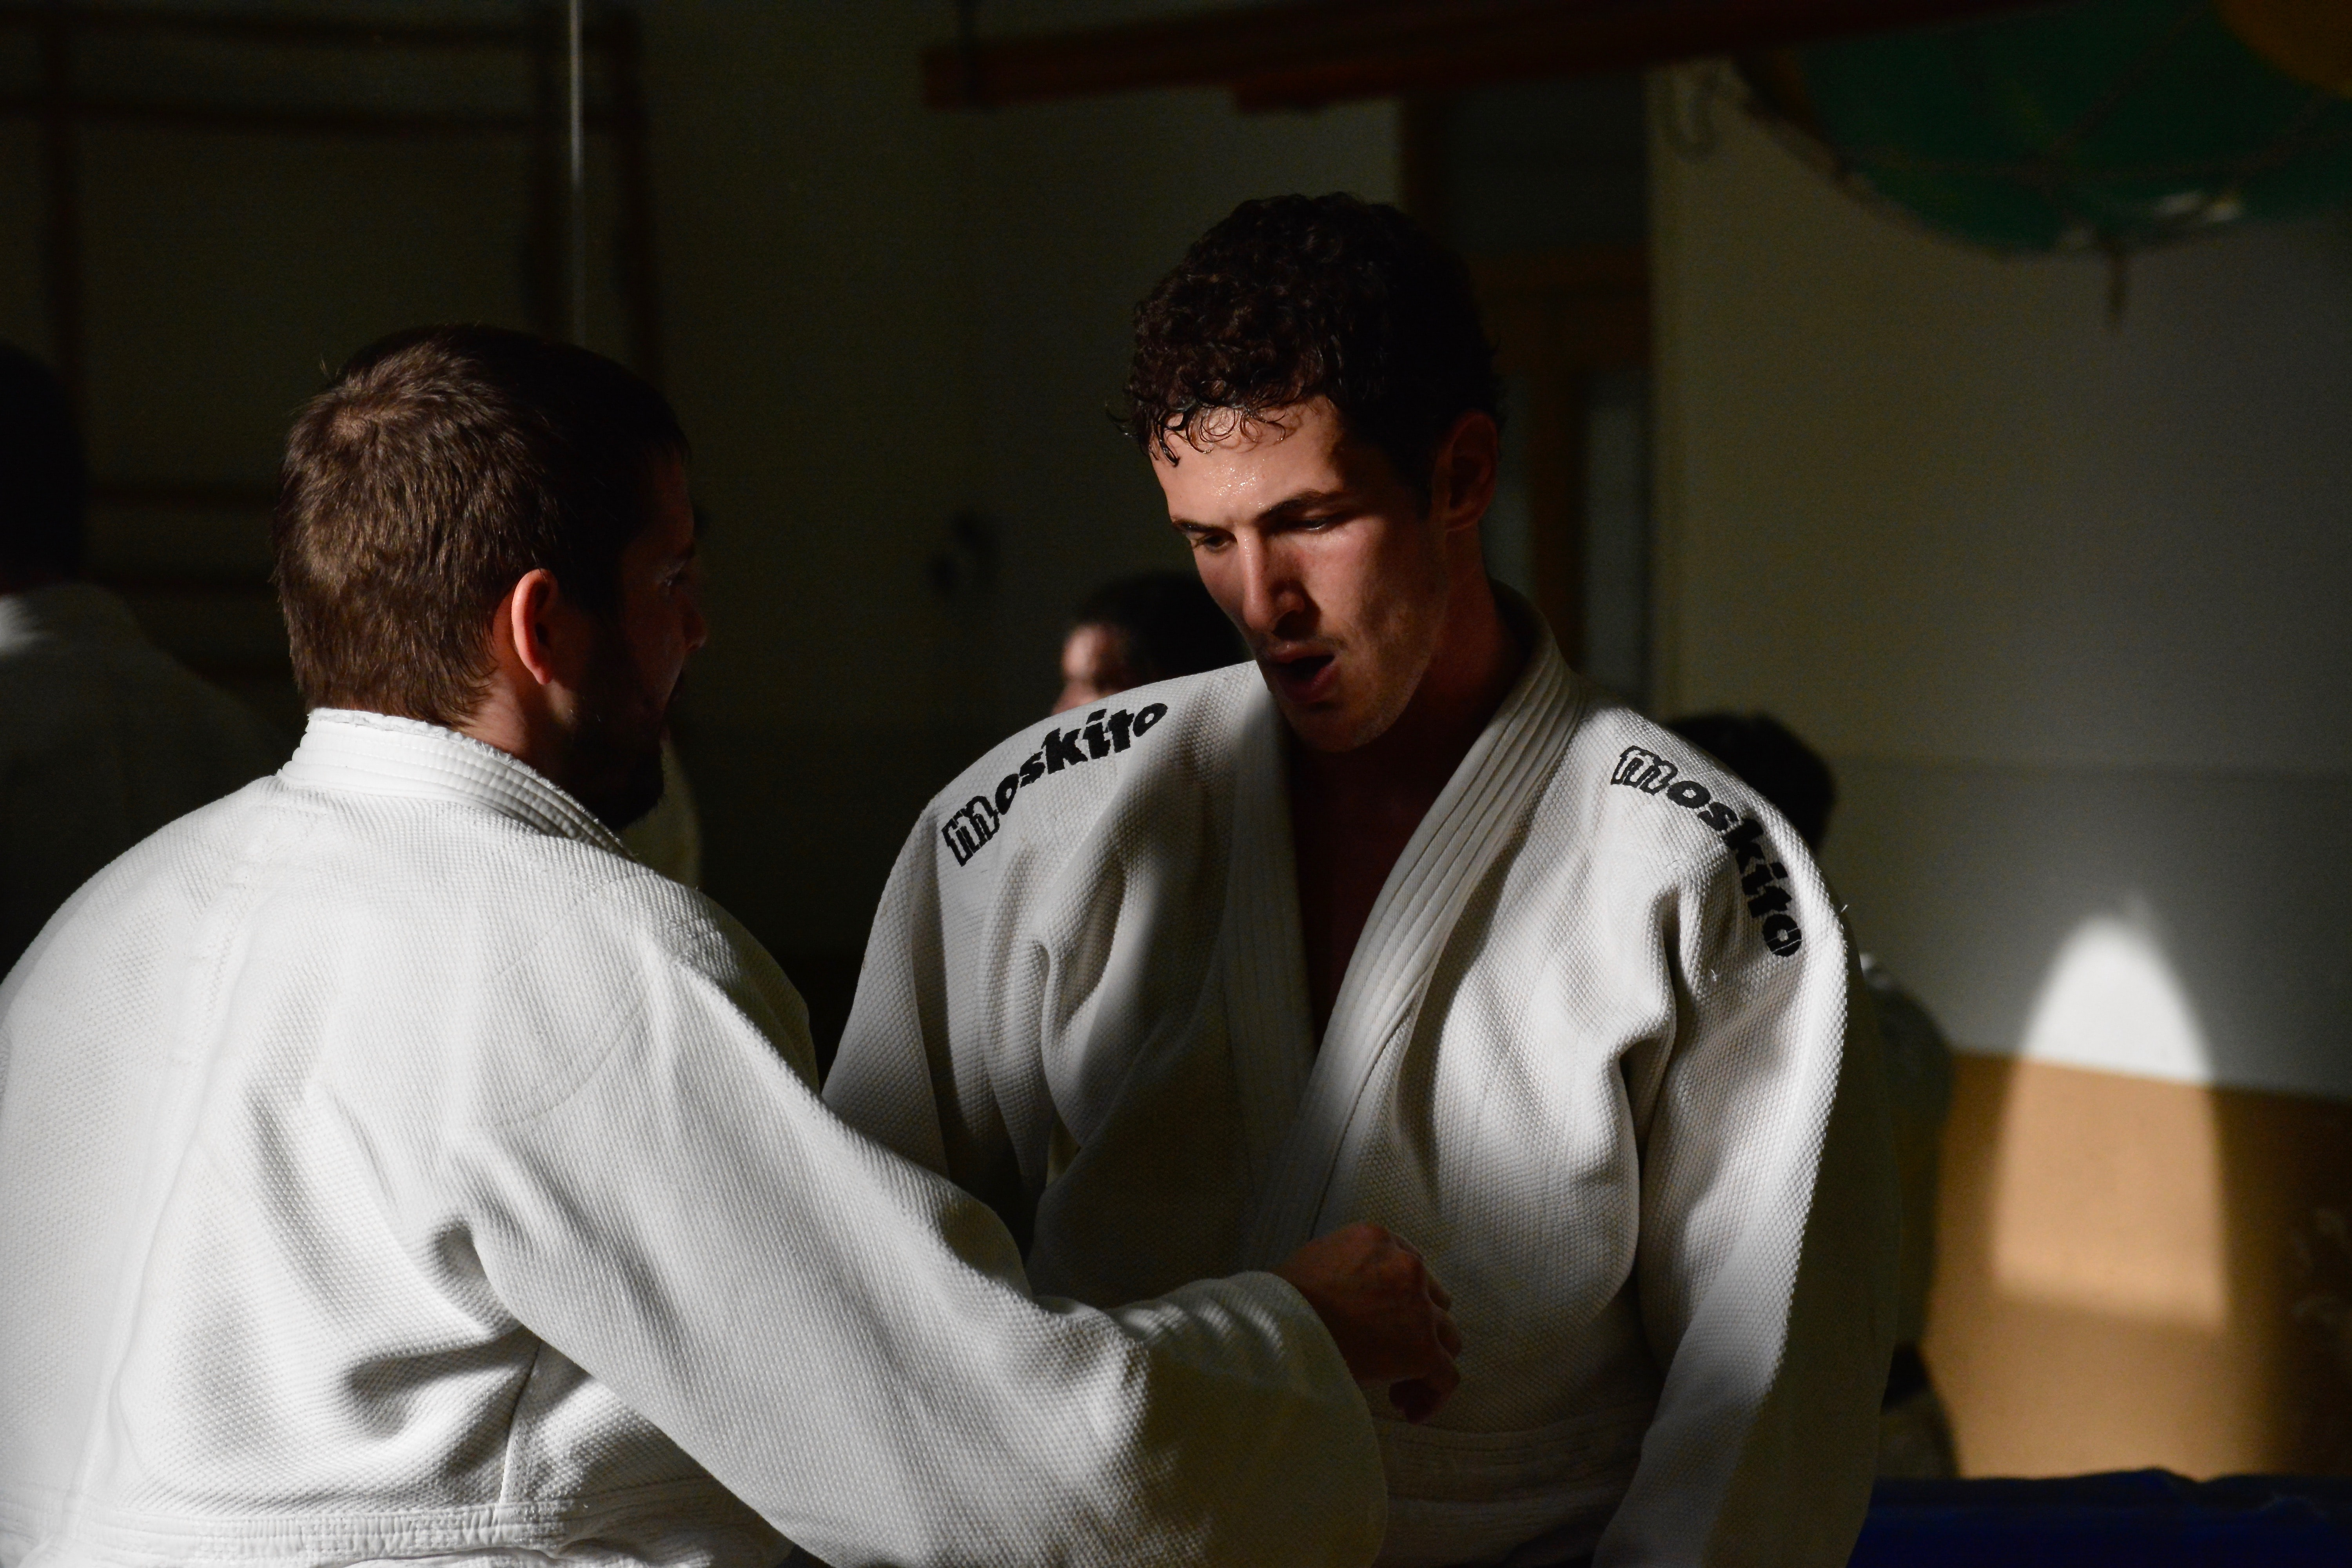 man wearing karate gi